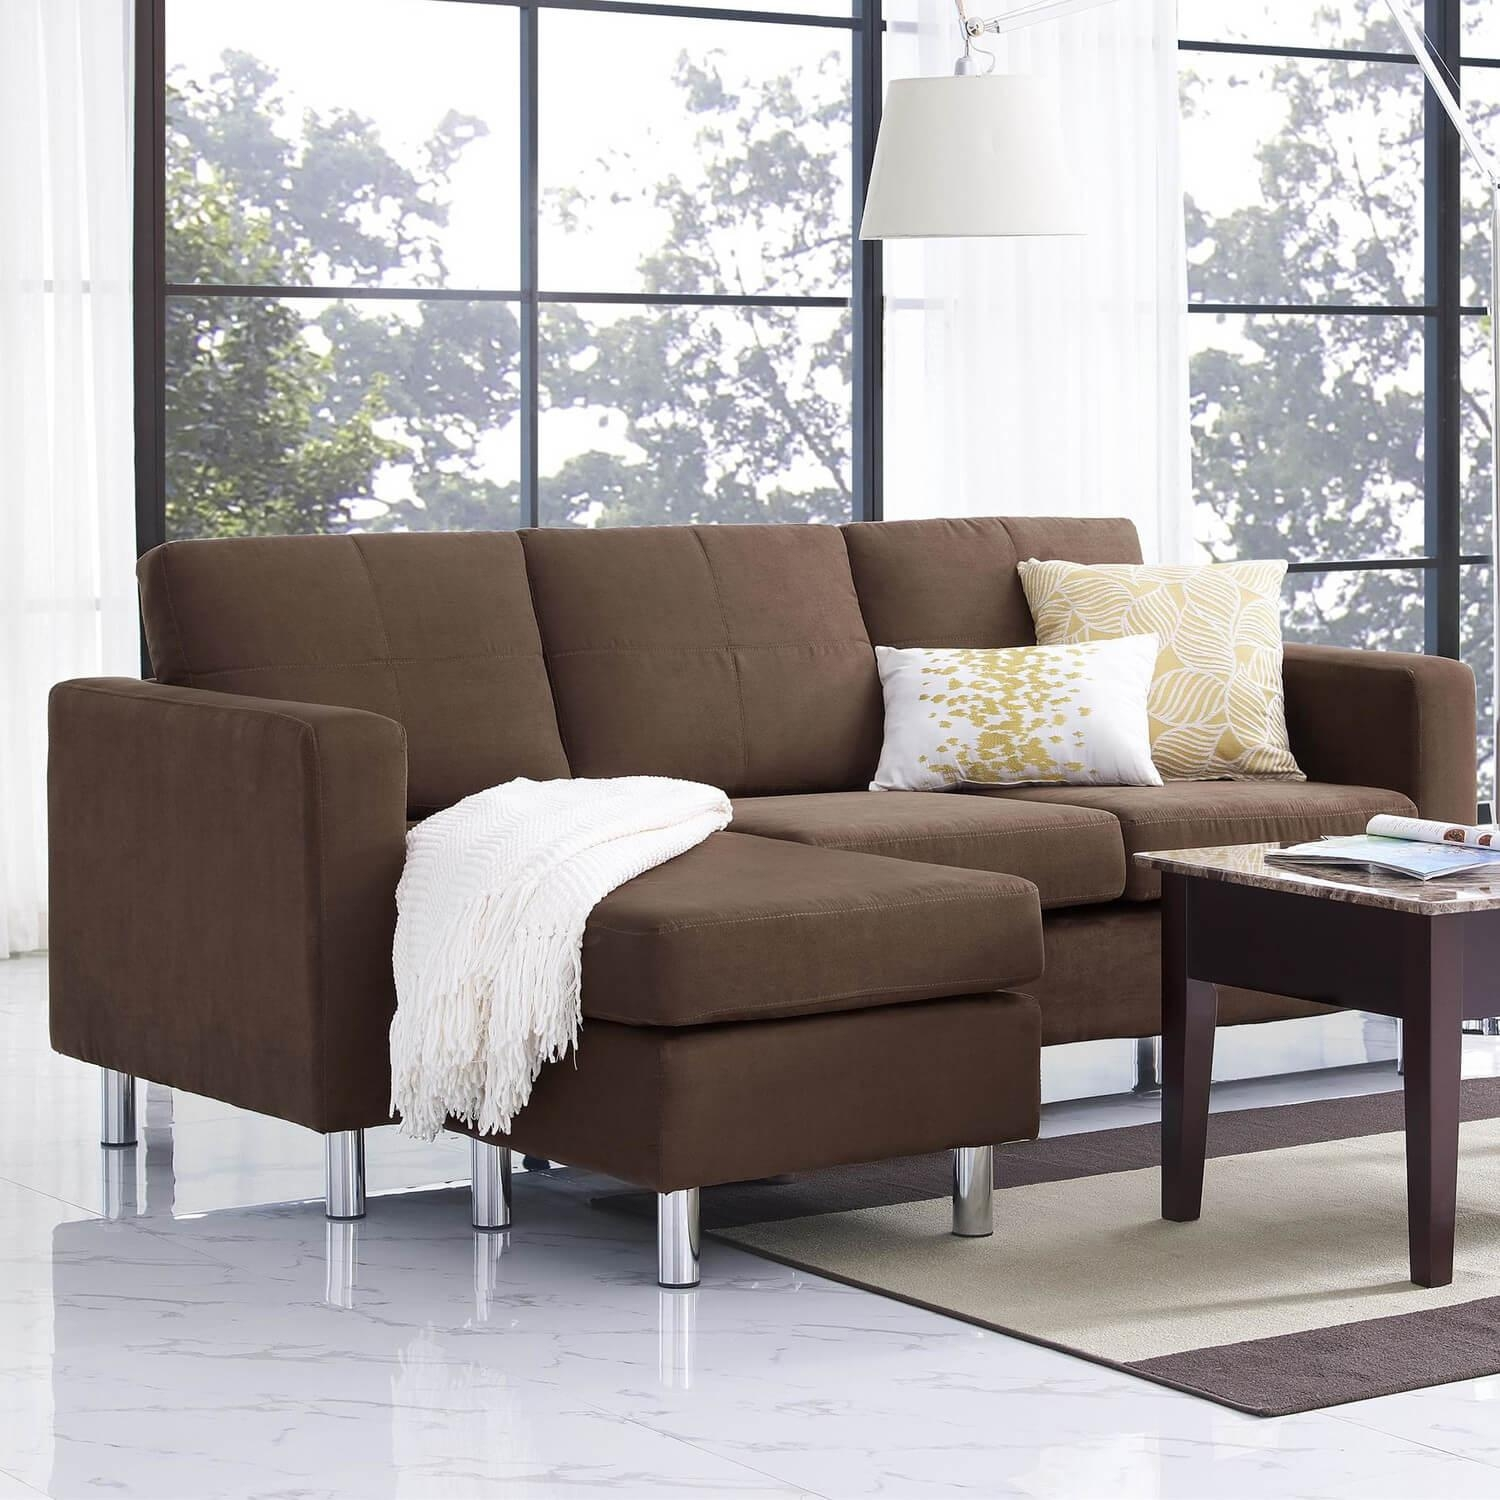 Furniture & Sofa: Perfect Small Spaces Configurable Sectional Sofa With Regard To Tiny Sofas (View 7 of 20)